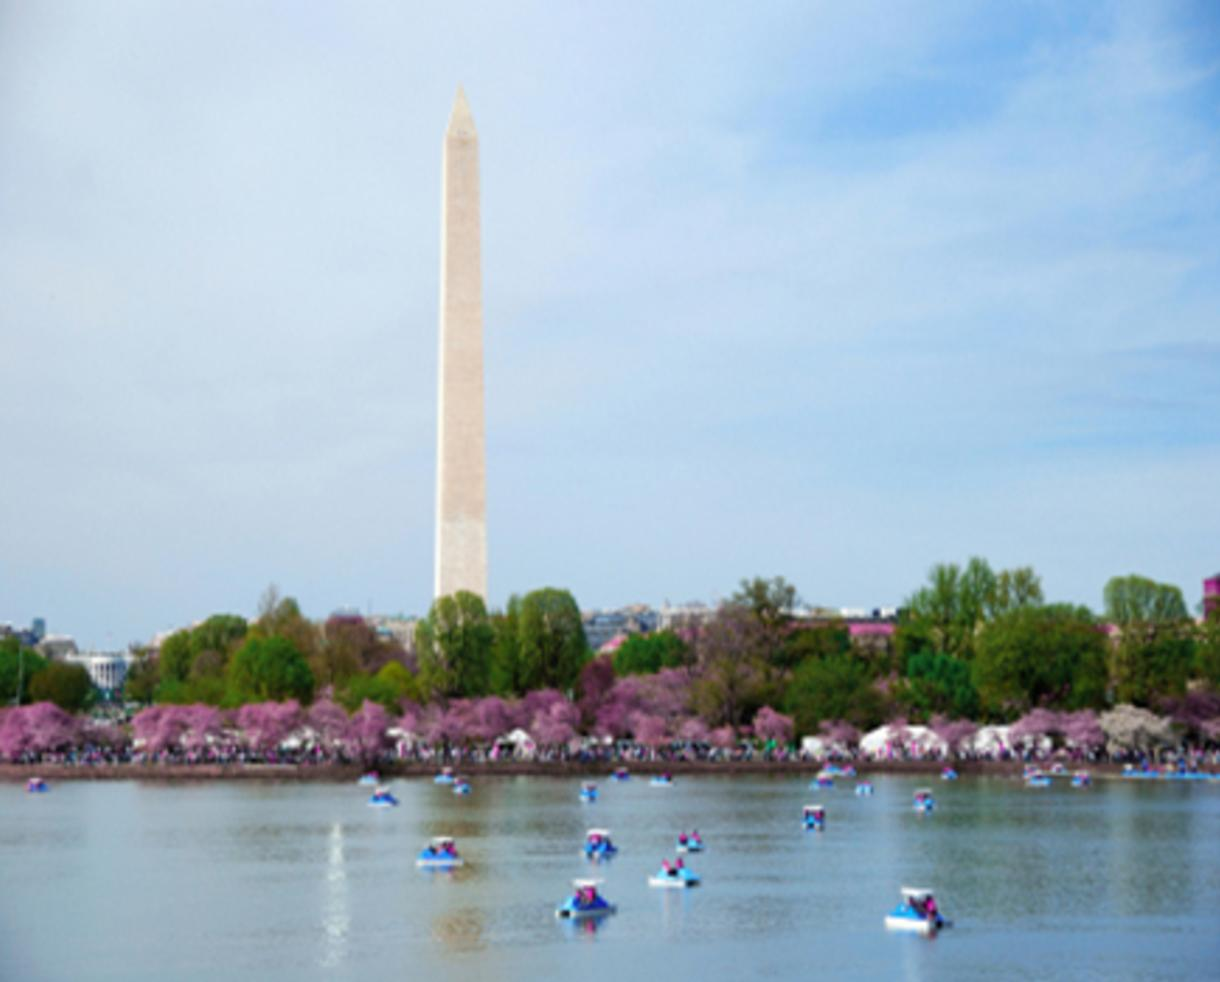 $22 for DC Weekday Sightseeing Cruise for FOUR People - CHERRY BLOSSOMS!! (50% Off - $44 Value)